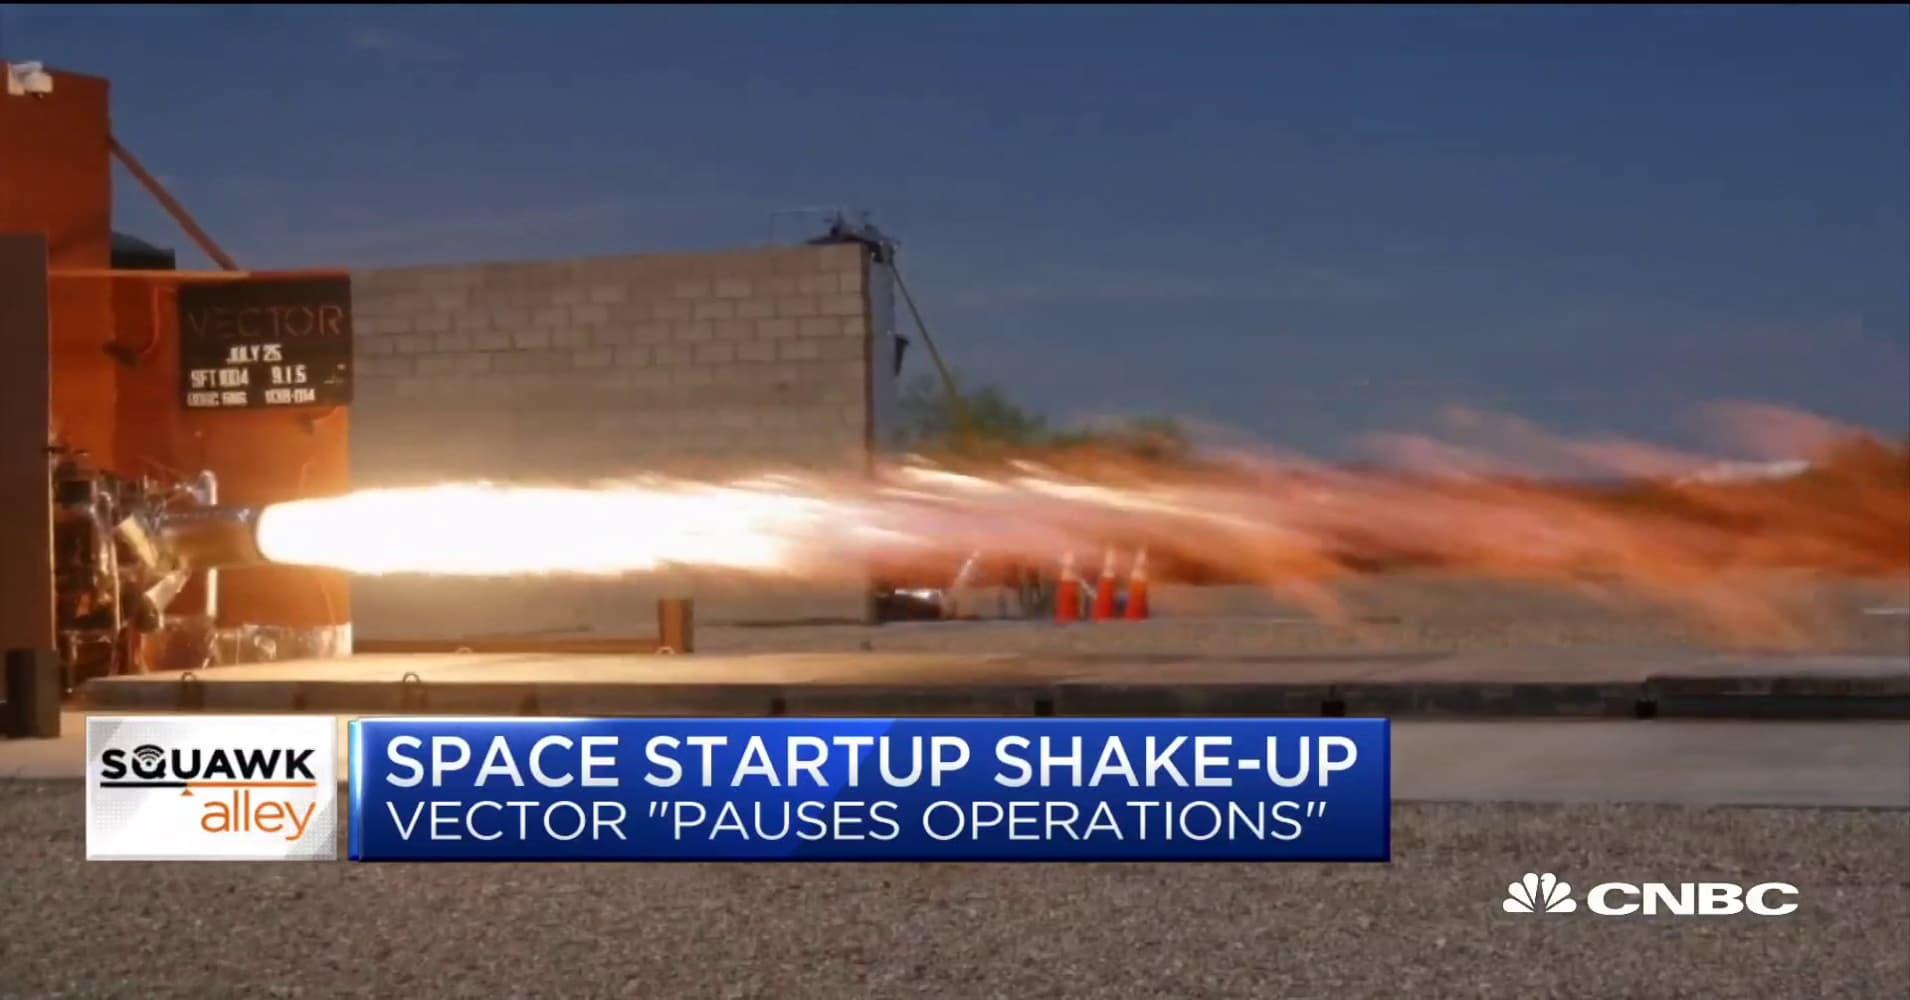 Space start-up Vector 'pauses operations', lays off employees